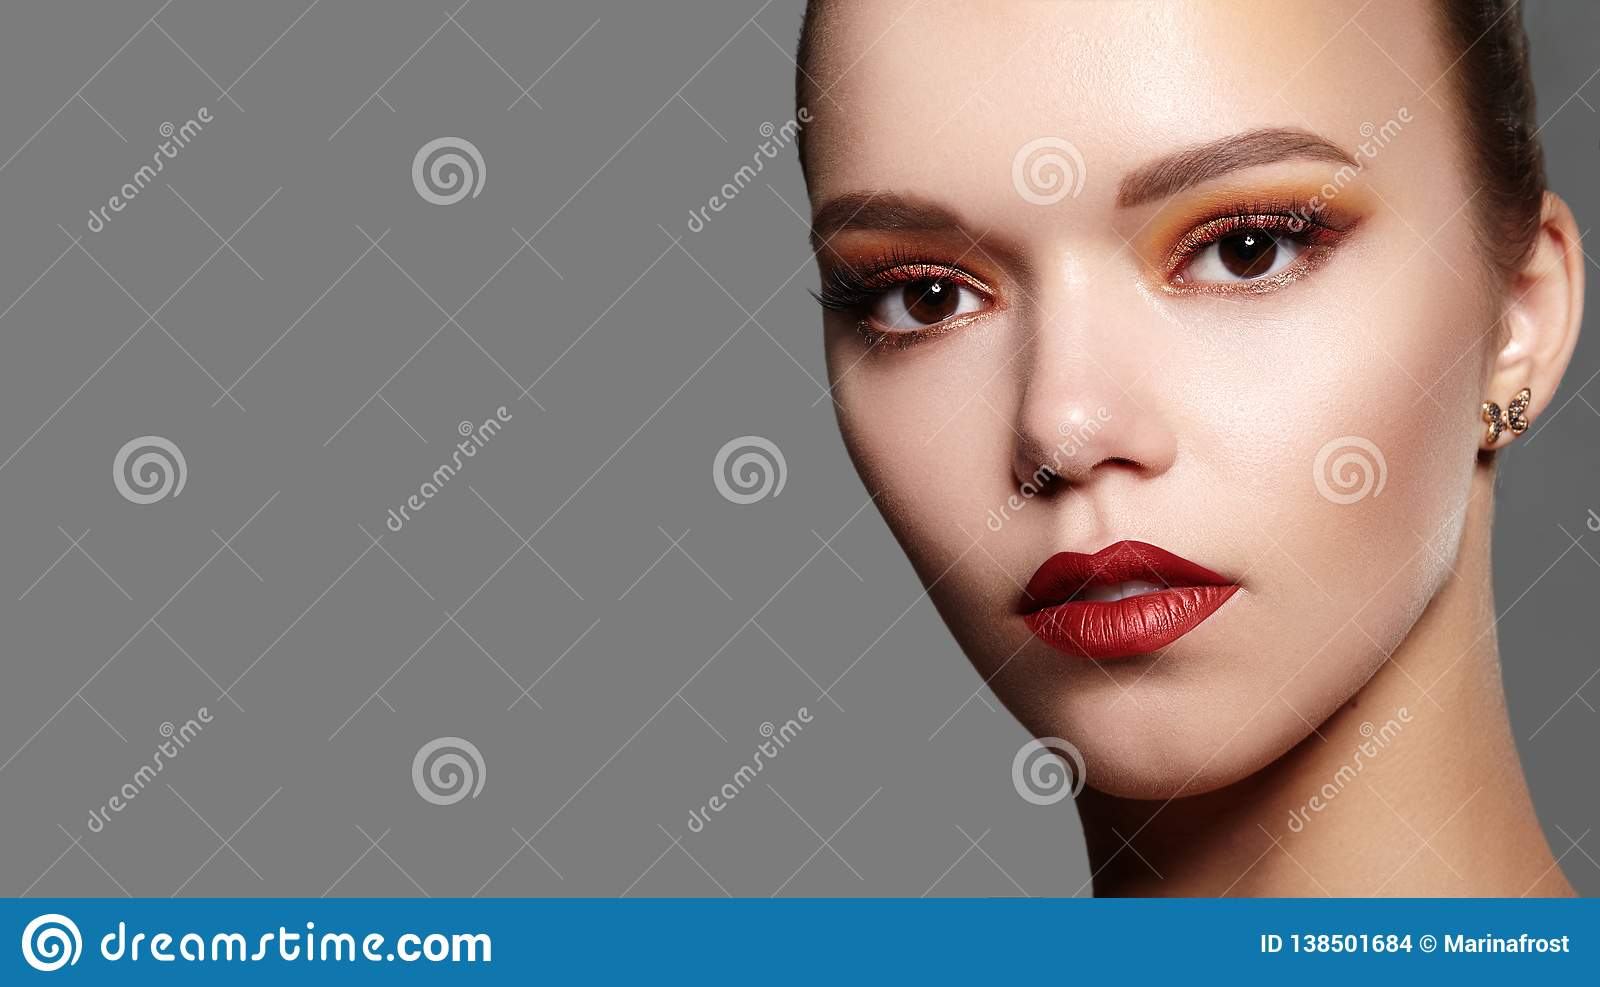 Beautiful Woman with Professional Makeup. Celebrate Style Eye Make-up, Perfect Eyebrows, Shine Skin. Bright Fashion Look